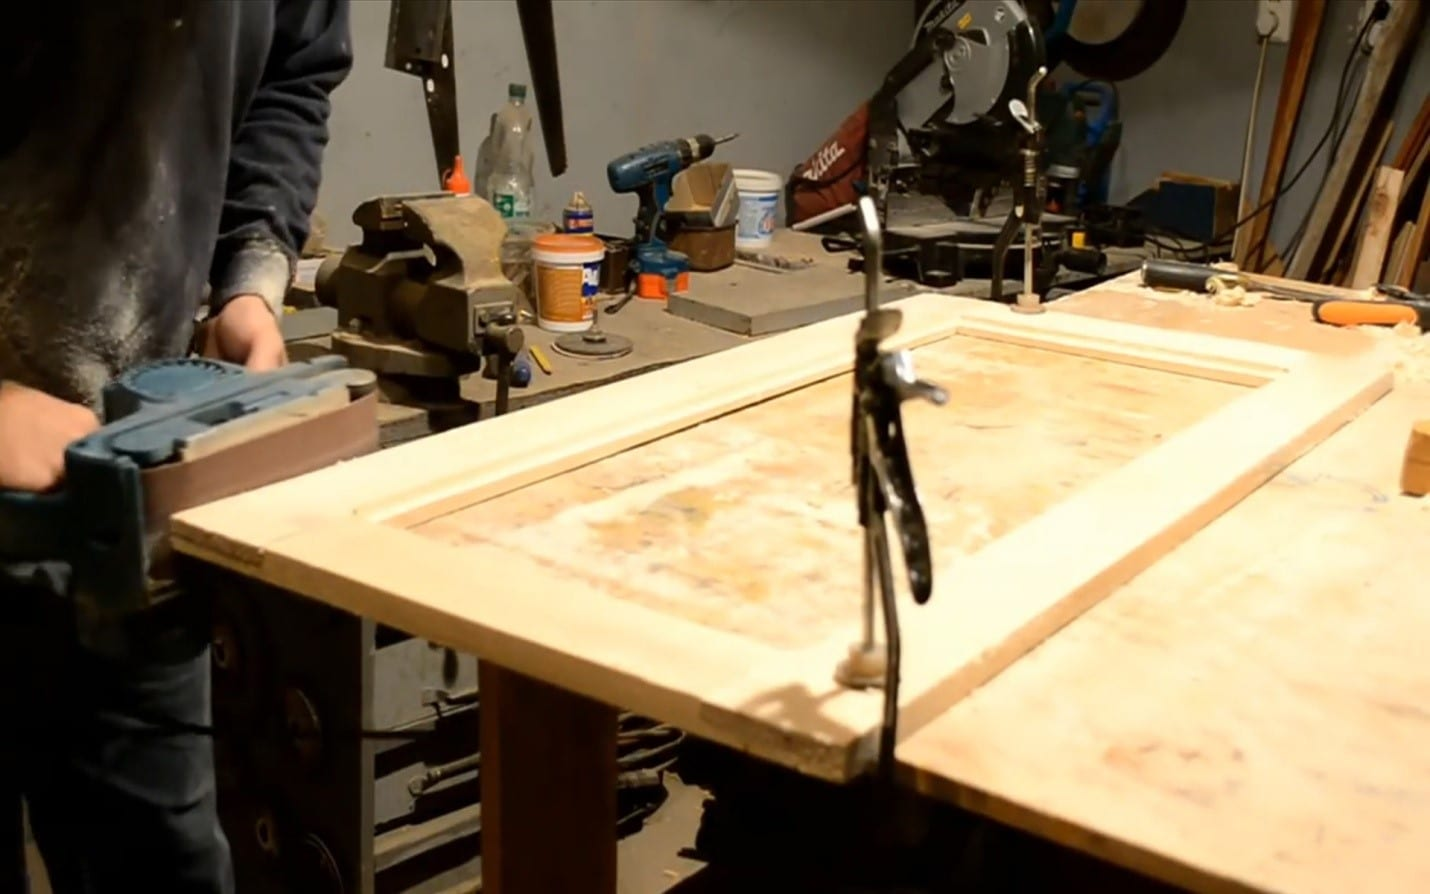 How To Make A 3D Wall Panel From Reclaimed Wood | DIY Project – Cut ...